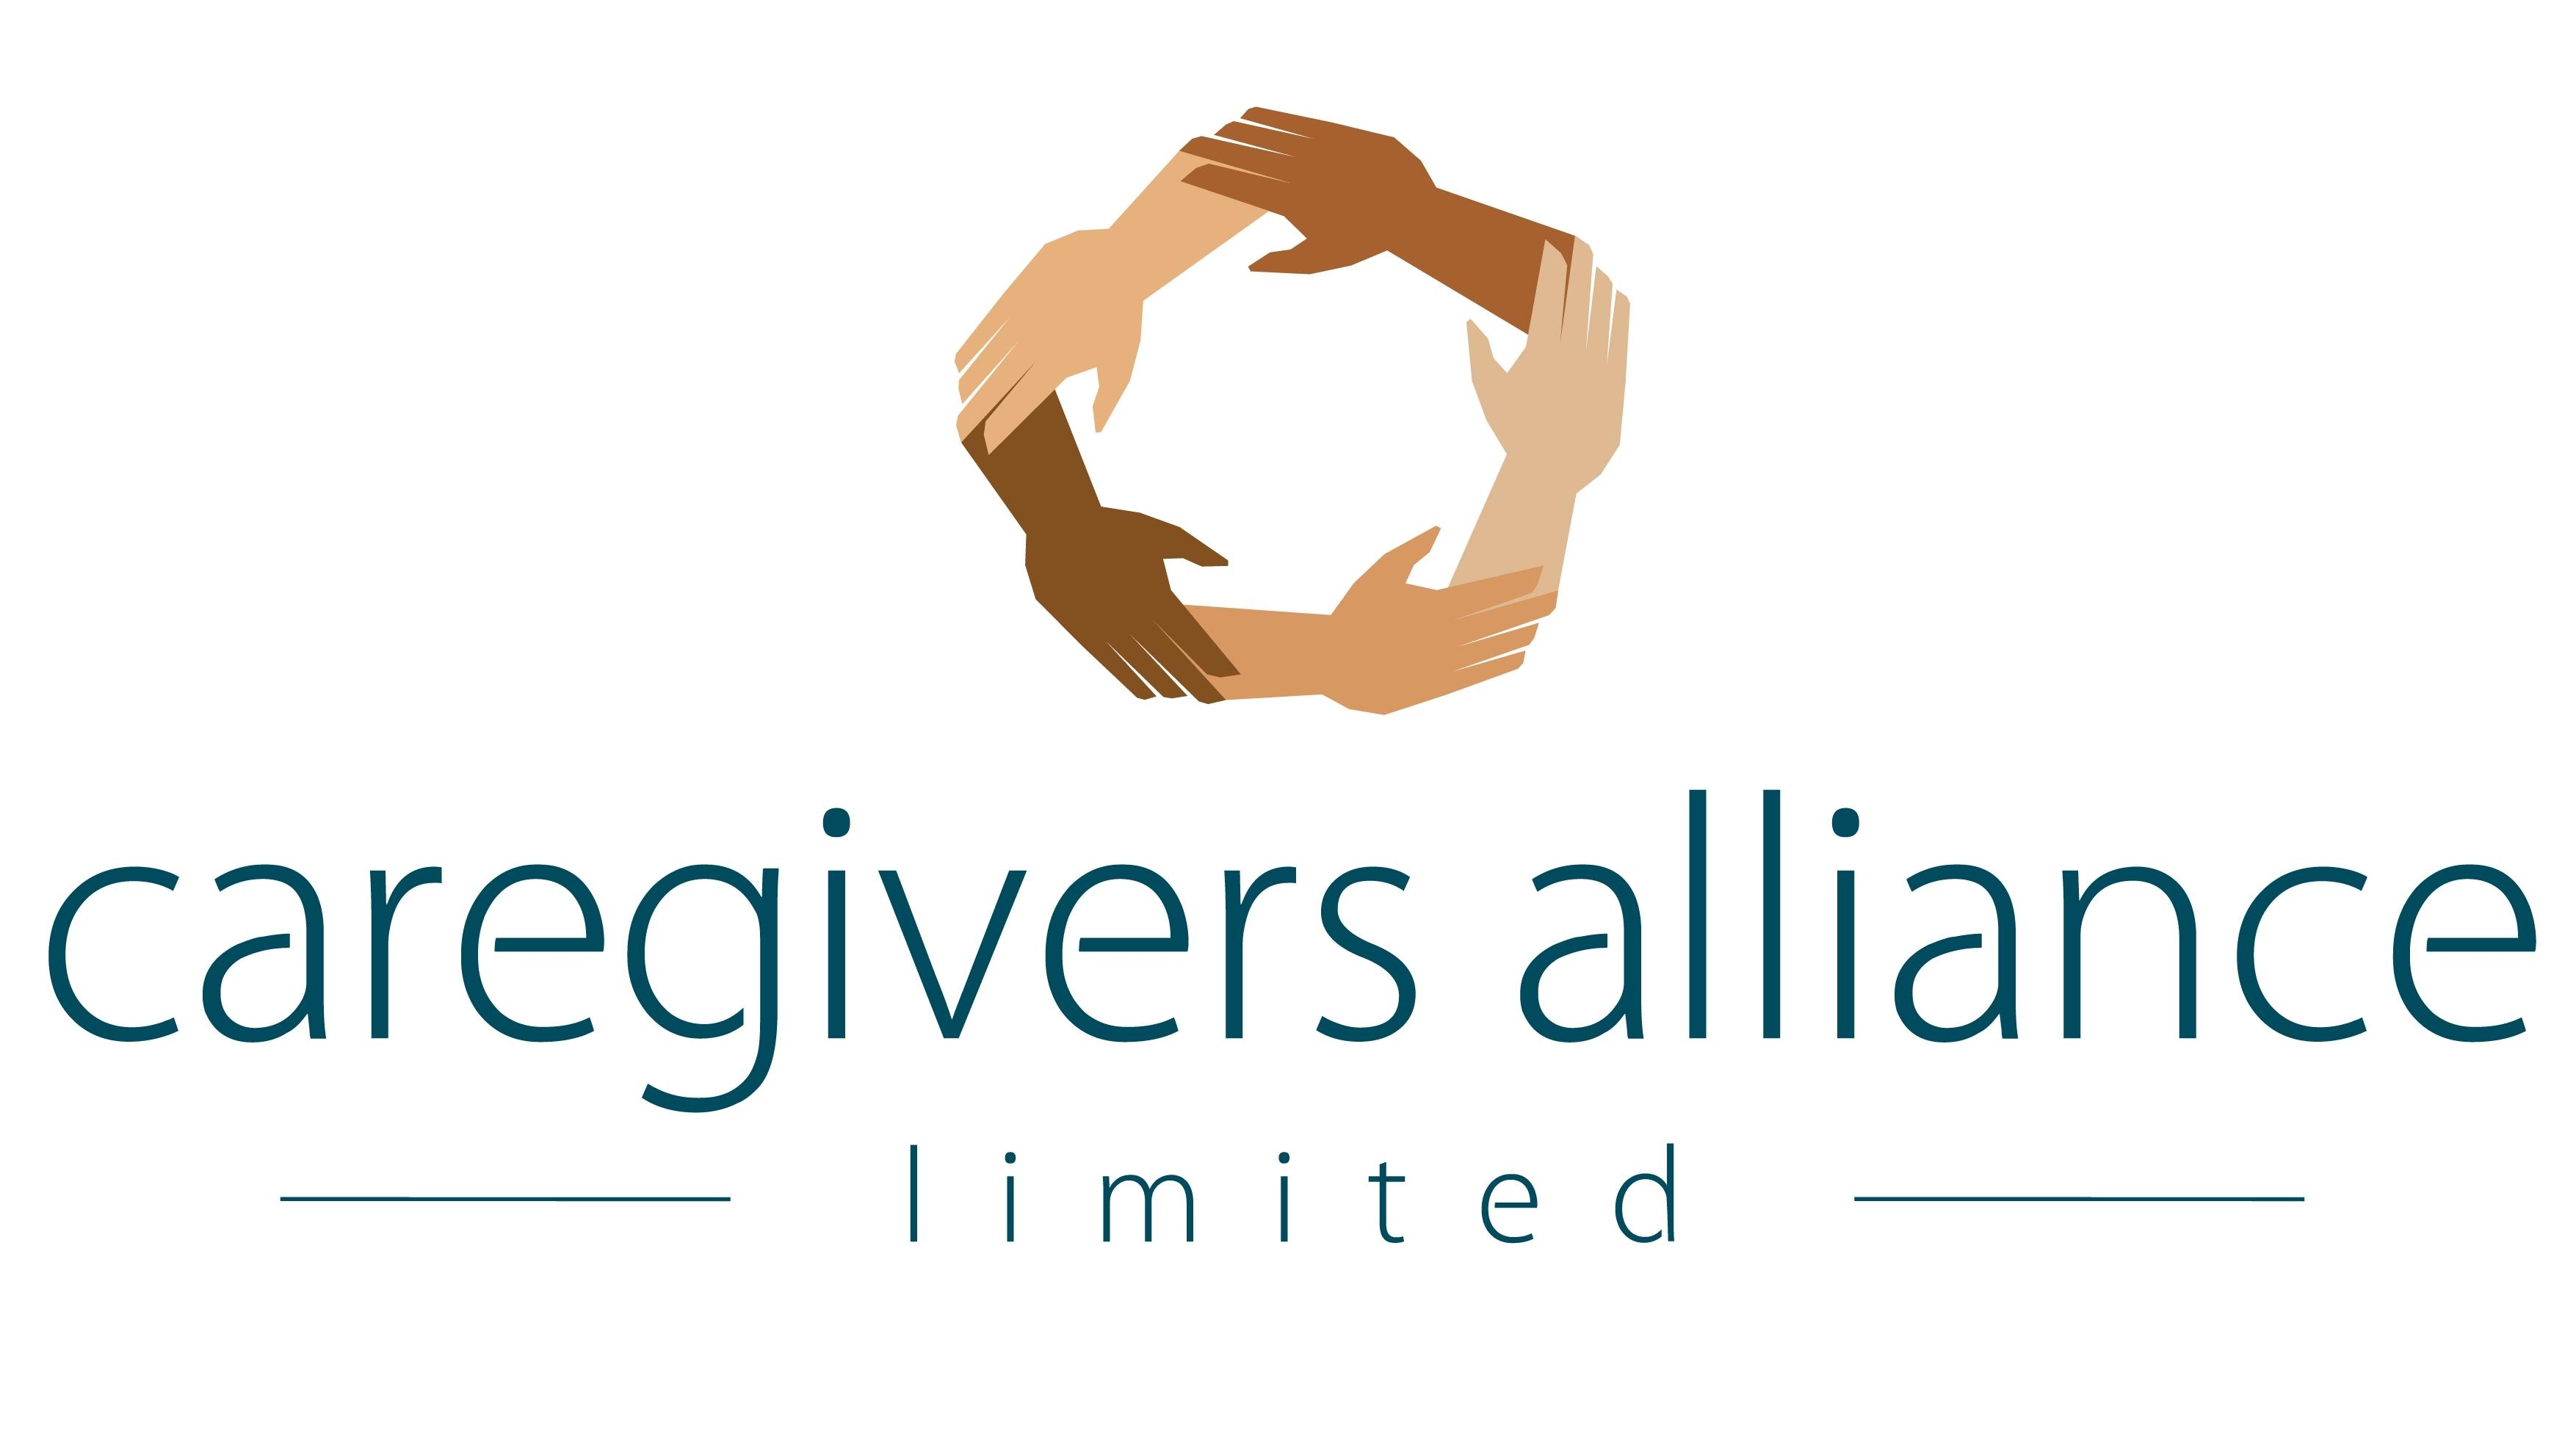 Caregivers Alliance Limited